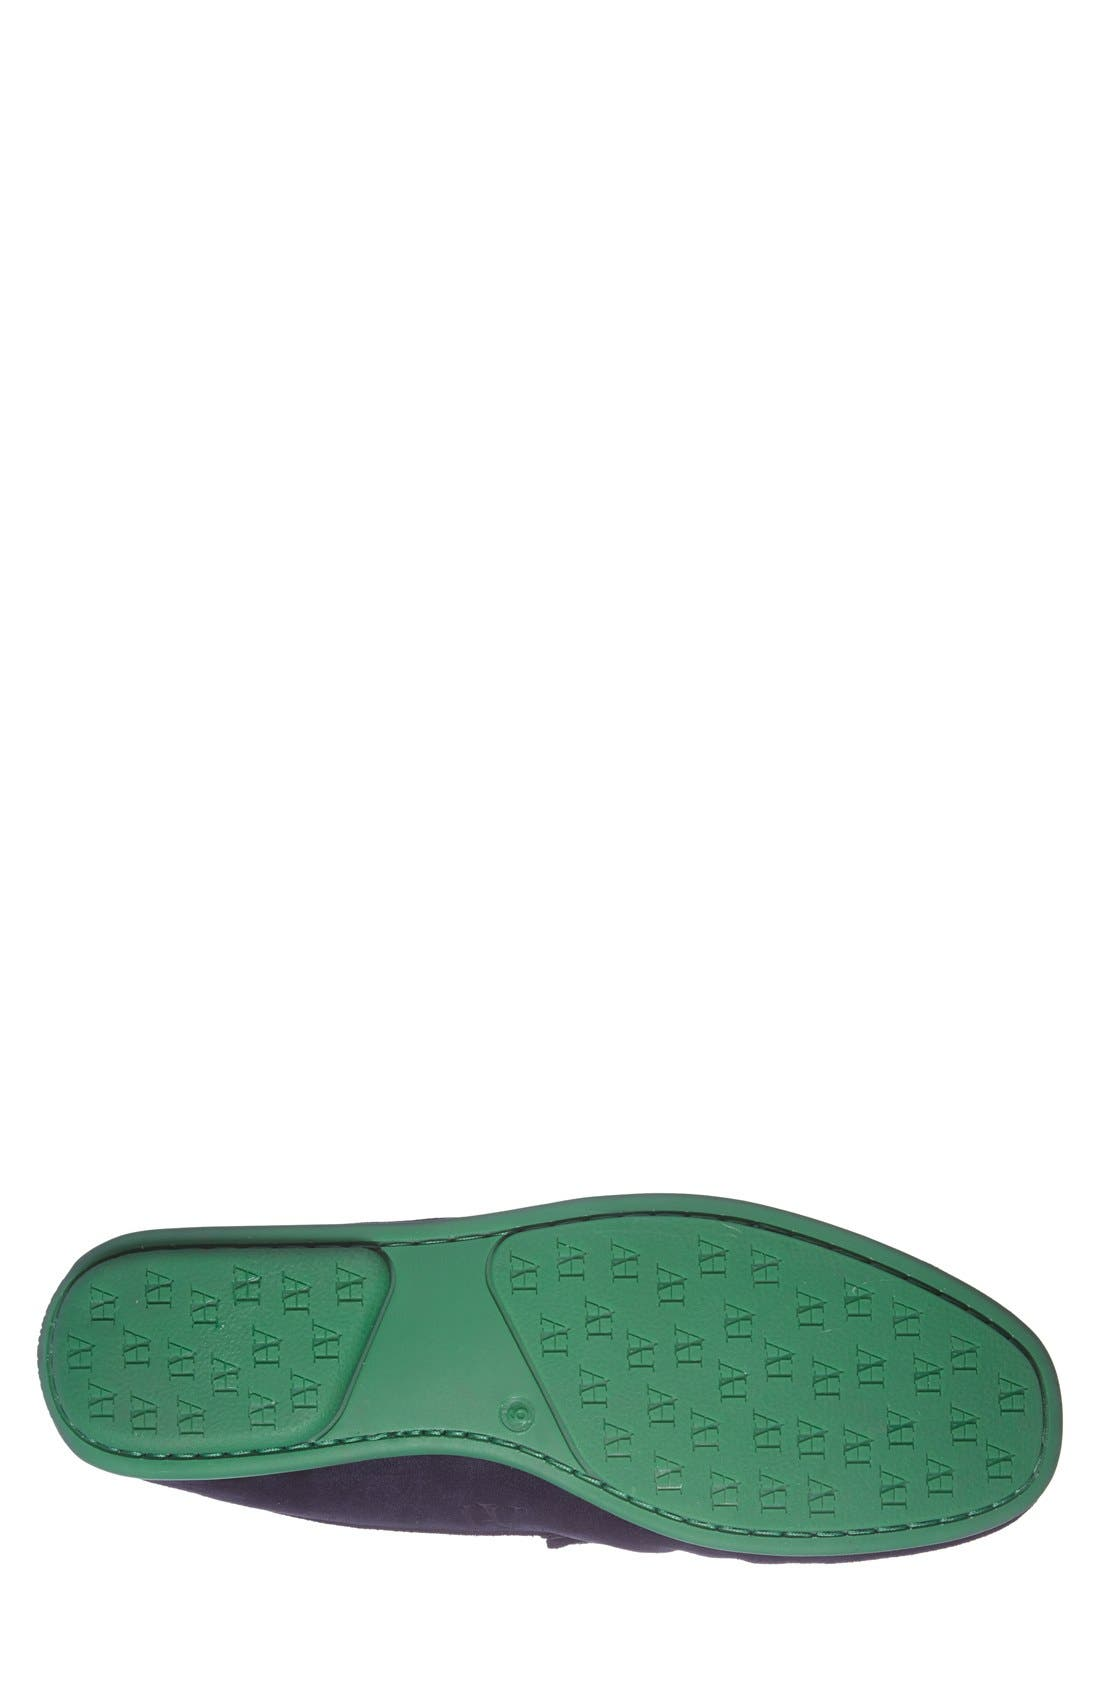 'Chathams' Penny Loafer,                             Alternate thumbnail 8, color,                             NAVY SUEDE/ GREEN